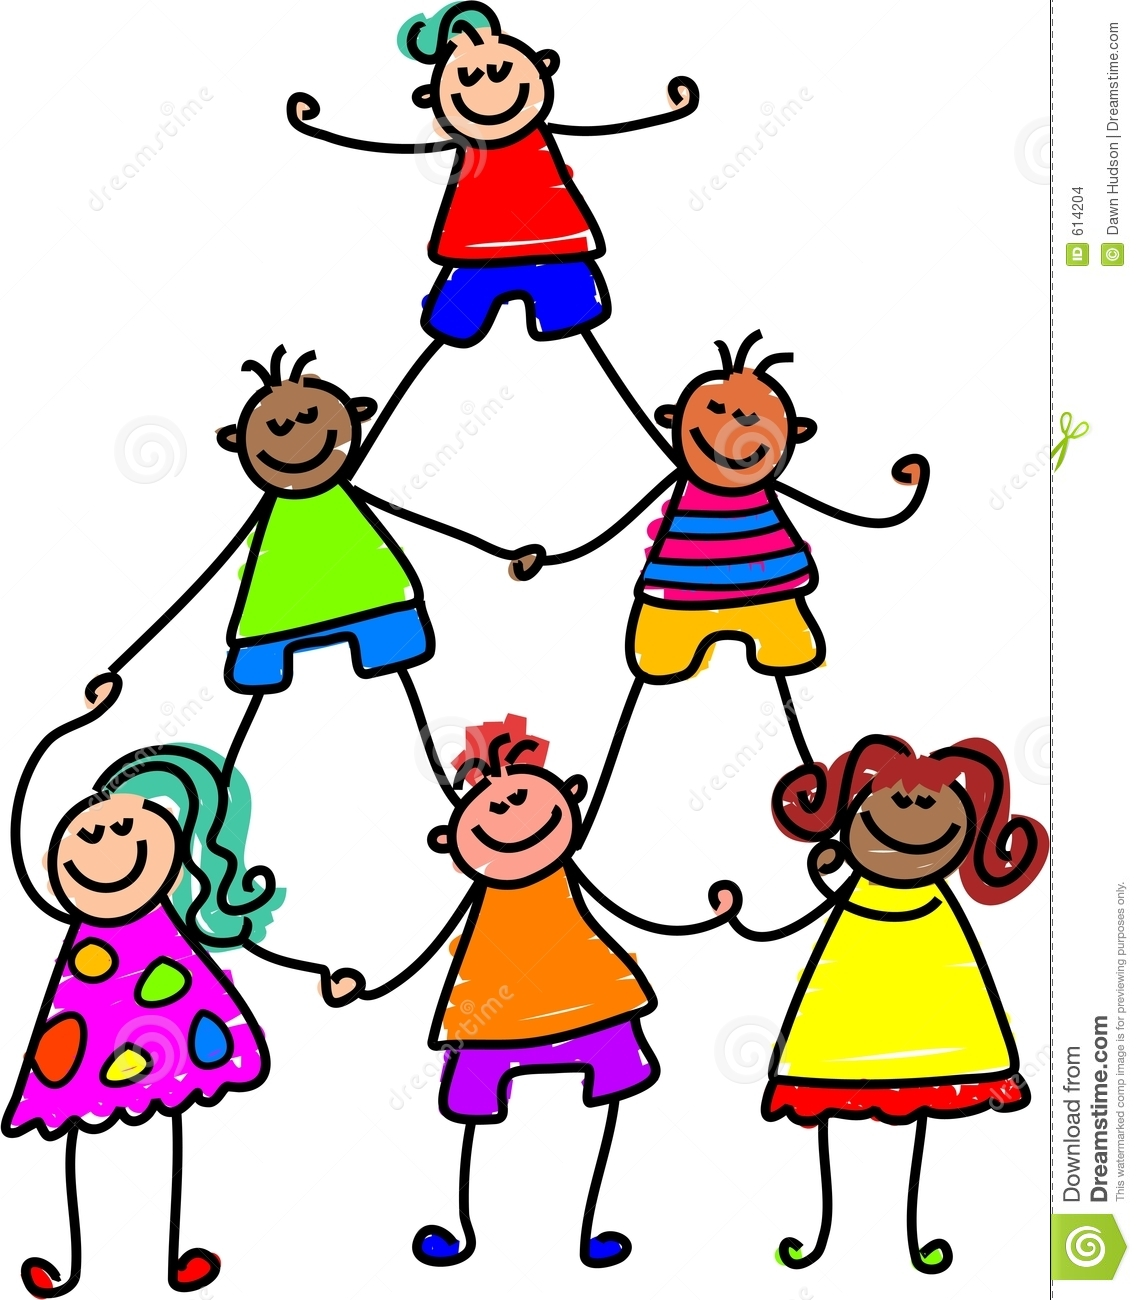 Children together clipart clip library download Kids Working Together Clipart | Free download best Kids Working ... clip library download